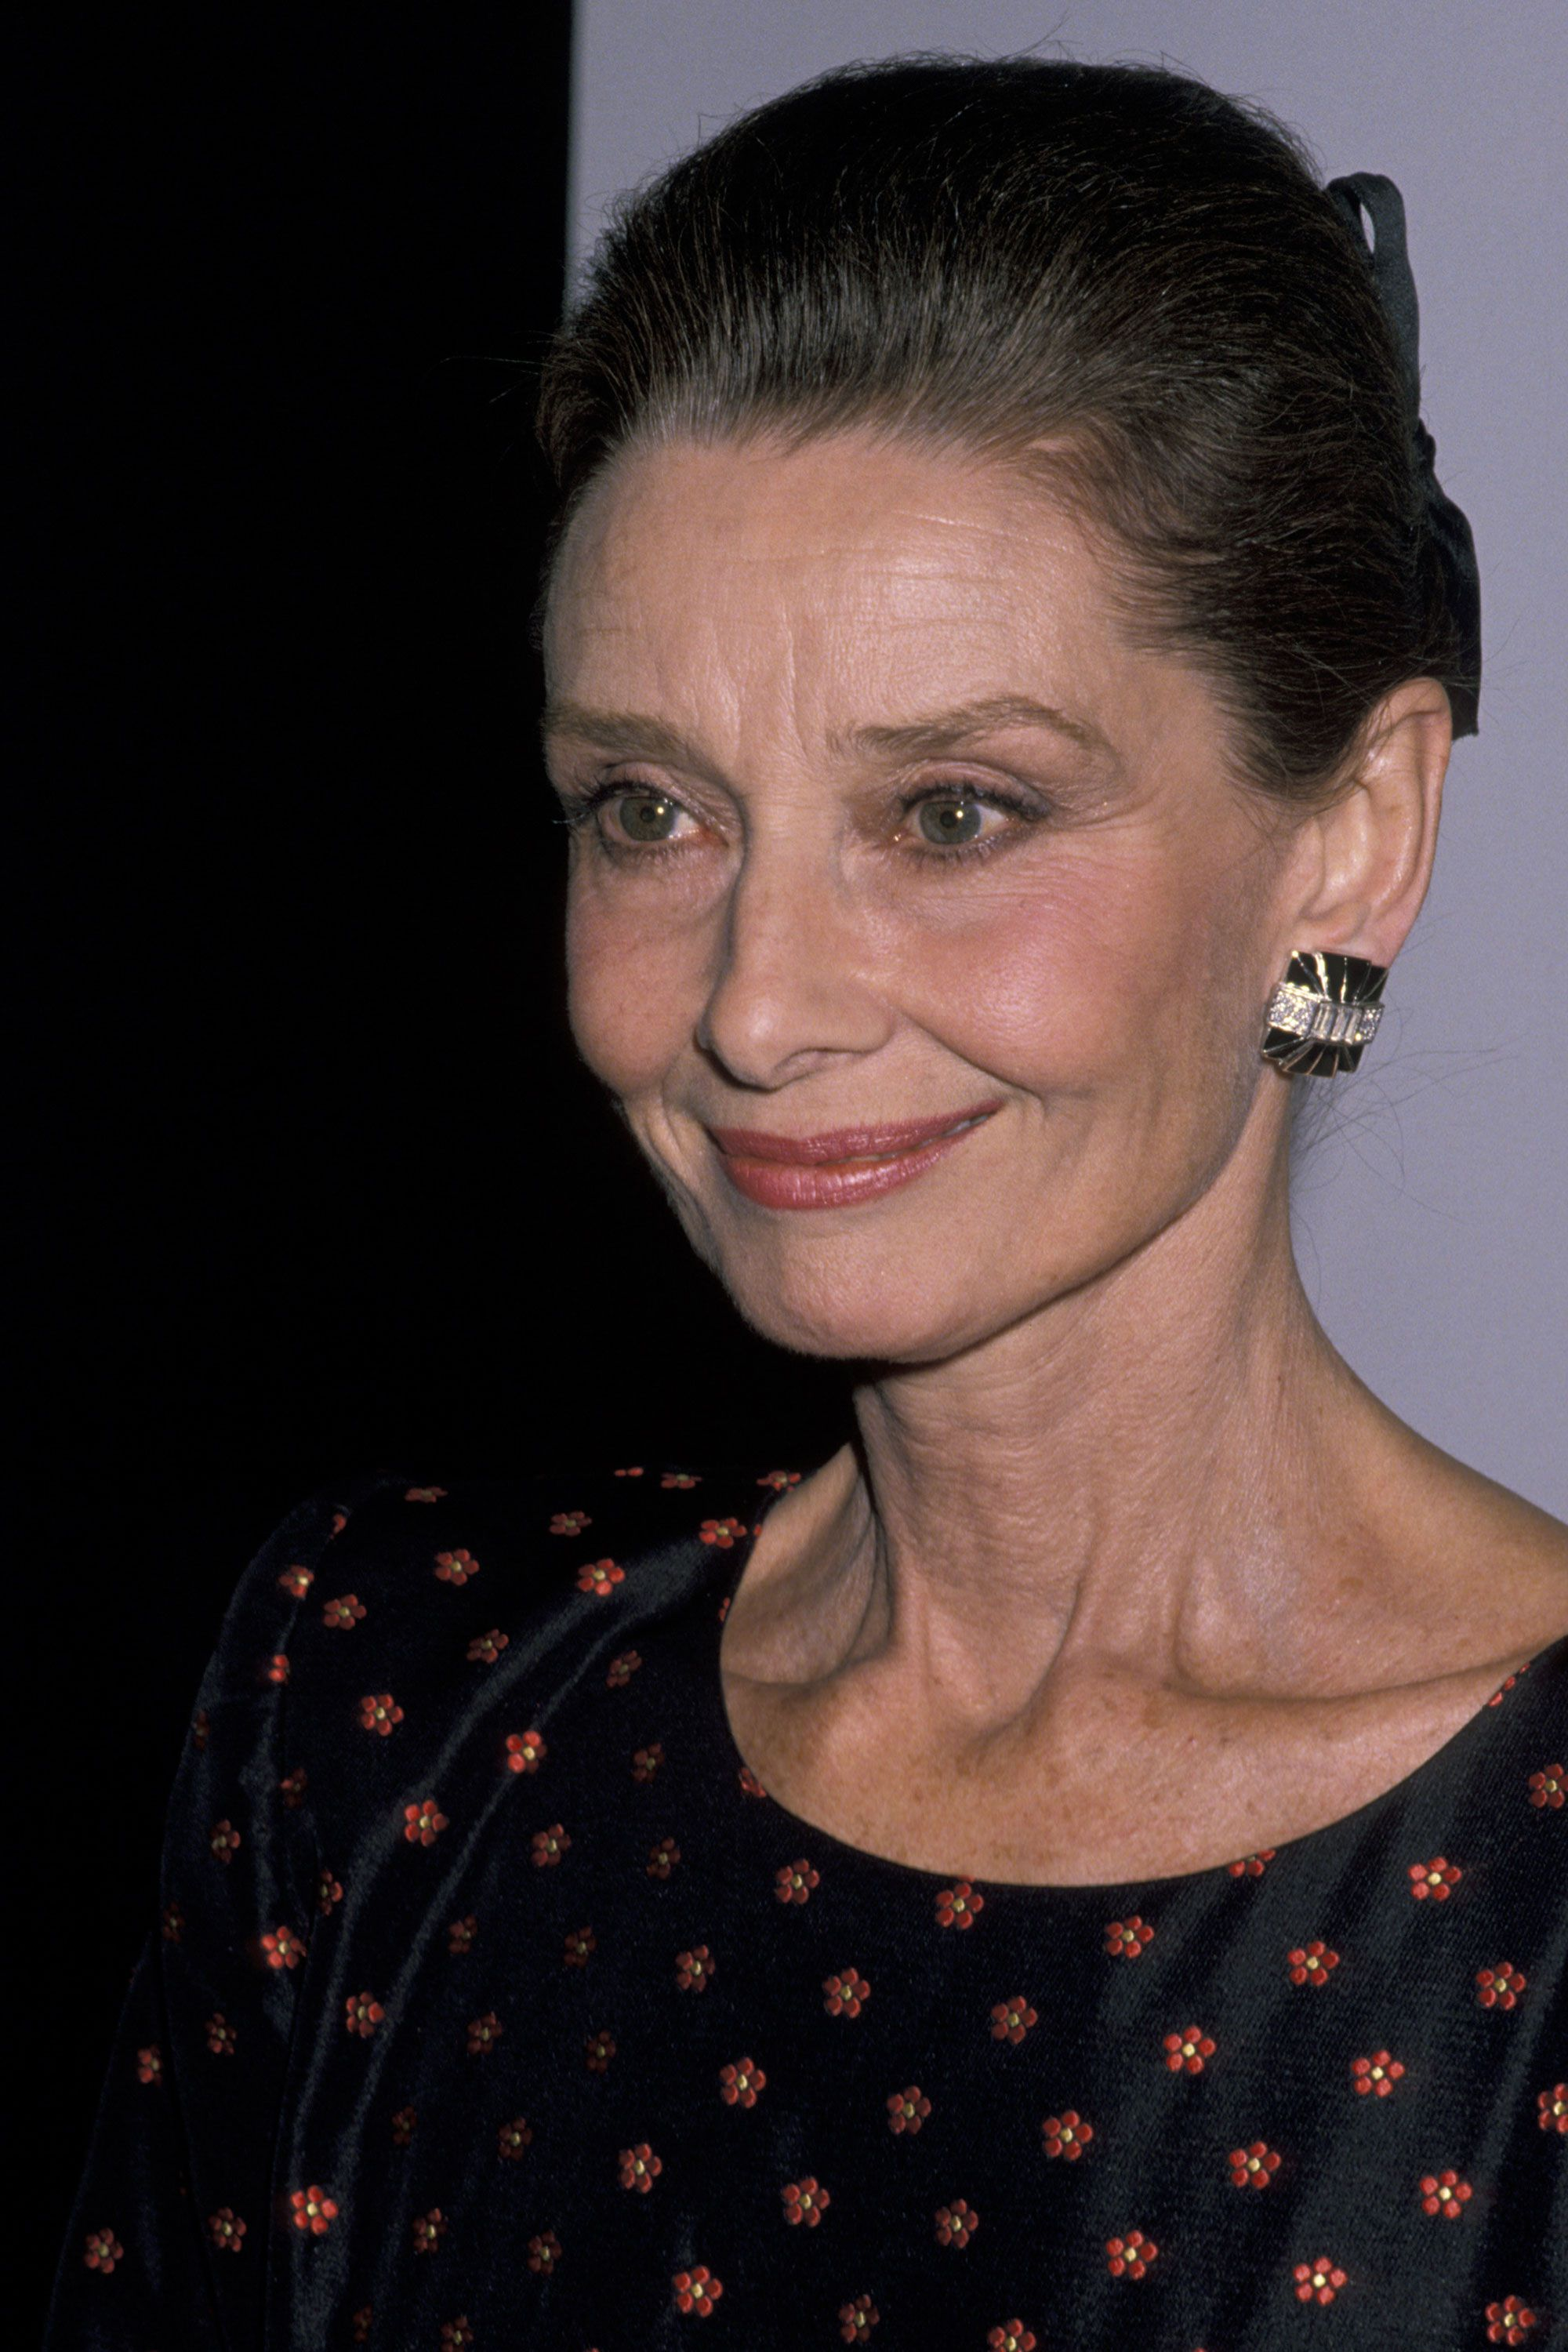 Audrey Hepburn Pictures Through the Years - Young & Old Photos of ...